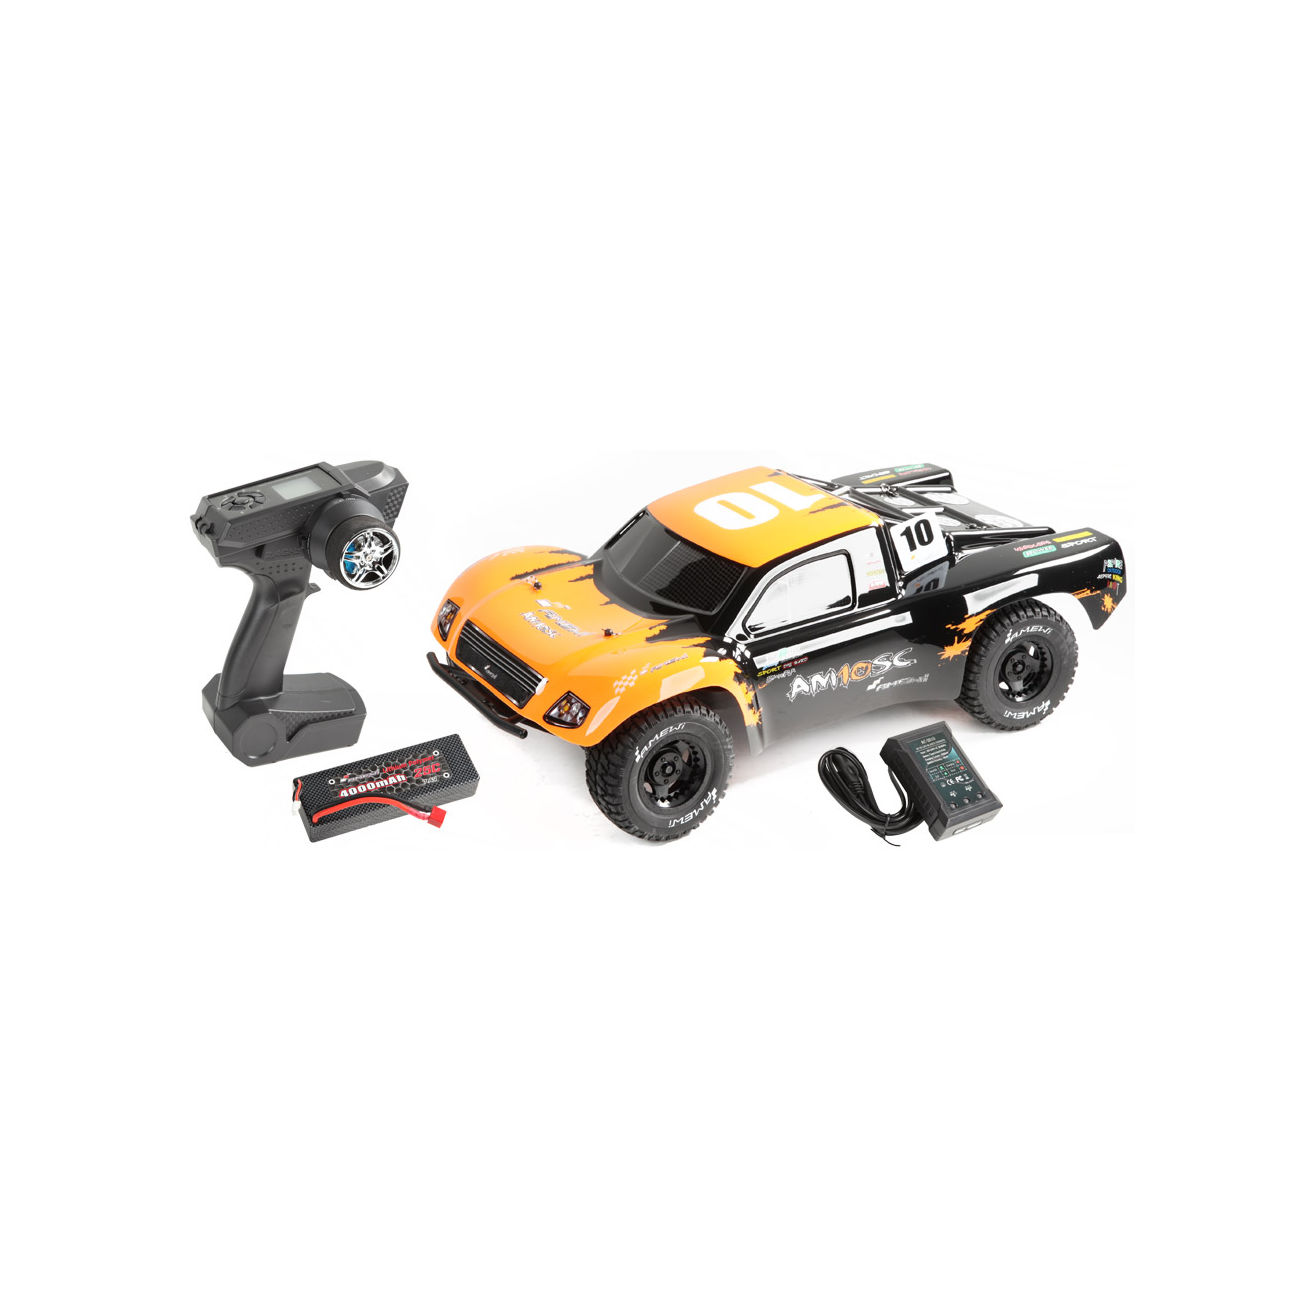 Amewi 1:10 AM10SC V2 Brushless 4WD Short Course Truck 2,4 GHz RTR Set 22139 0